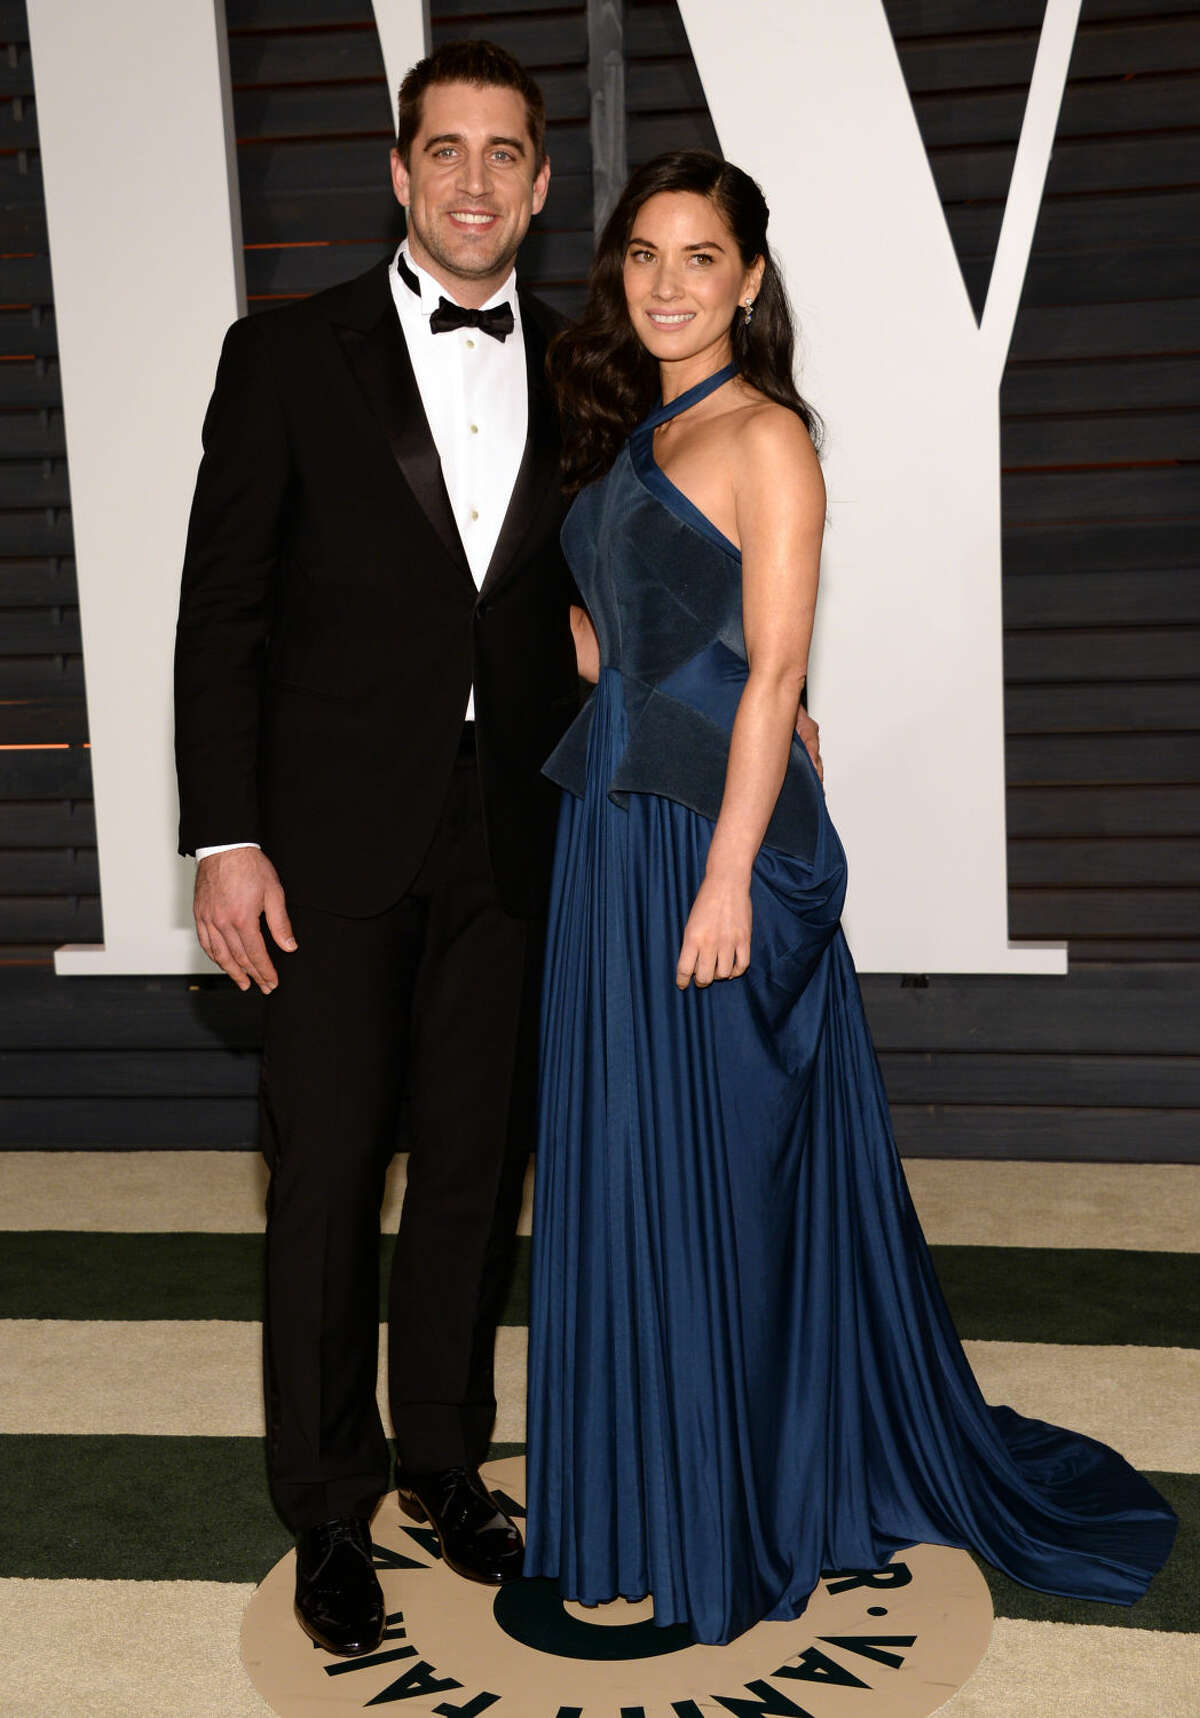 Aaron Rodgers, left, and Olivia Munn arrives at the 2015 Vanity Fair Oscar Party on Sunday, Feb. 22, 2015, in Beverly Hills, Calif. (Photo by Evan Agostini/Invision/AP)